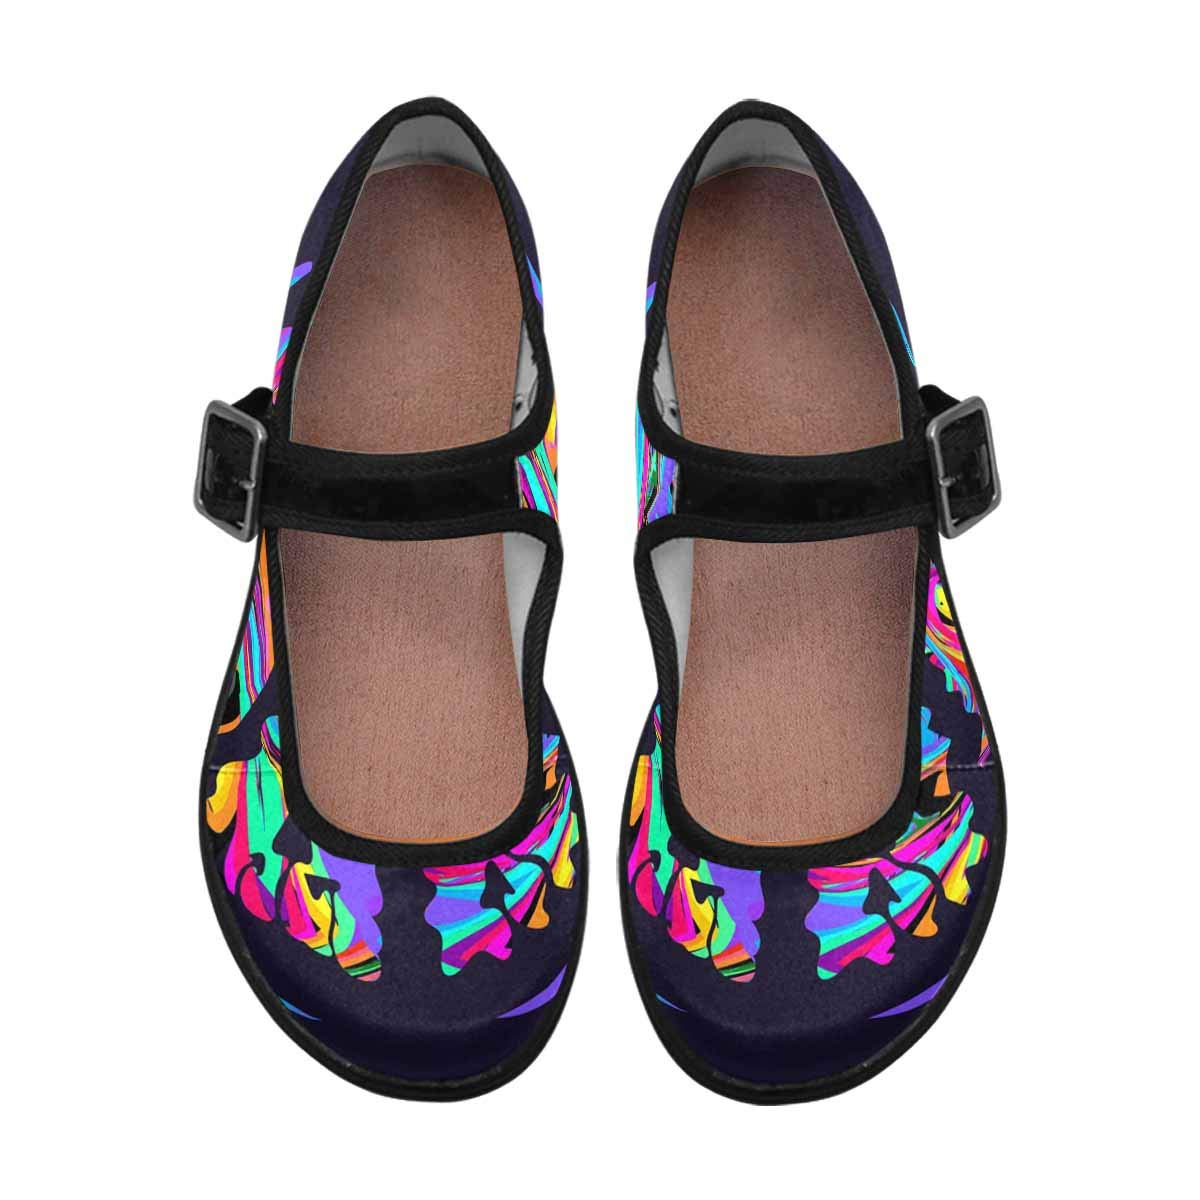 INTERESTPRINT Womens Slip-Resistant Mary Jane Flats for Dr Scholls Colful Peace Symbol